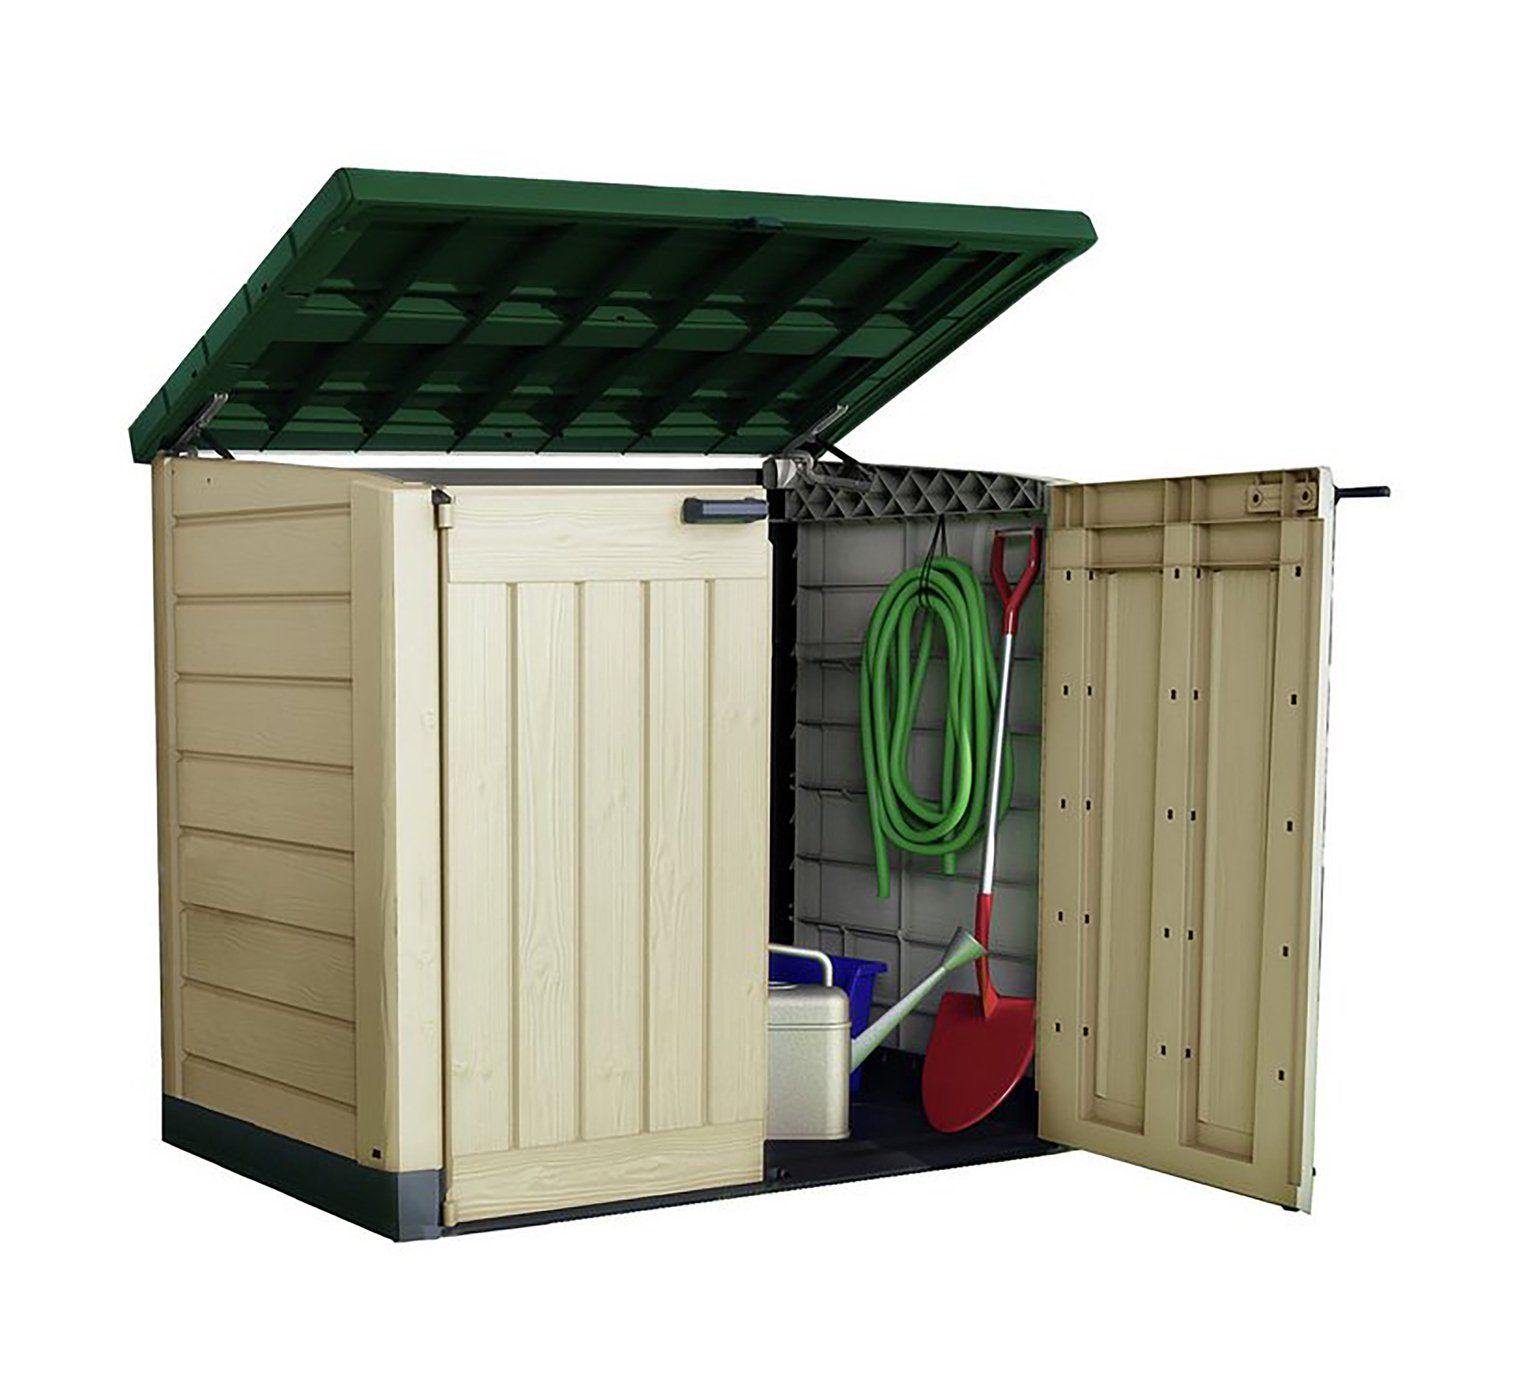 Keter Store It Out Max 1200L Storage Shed Beige/Green in